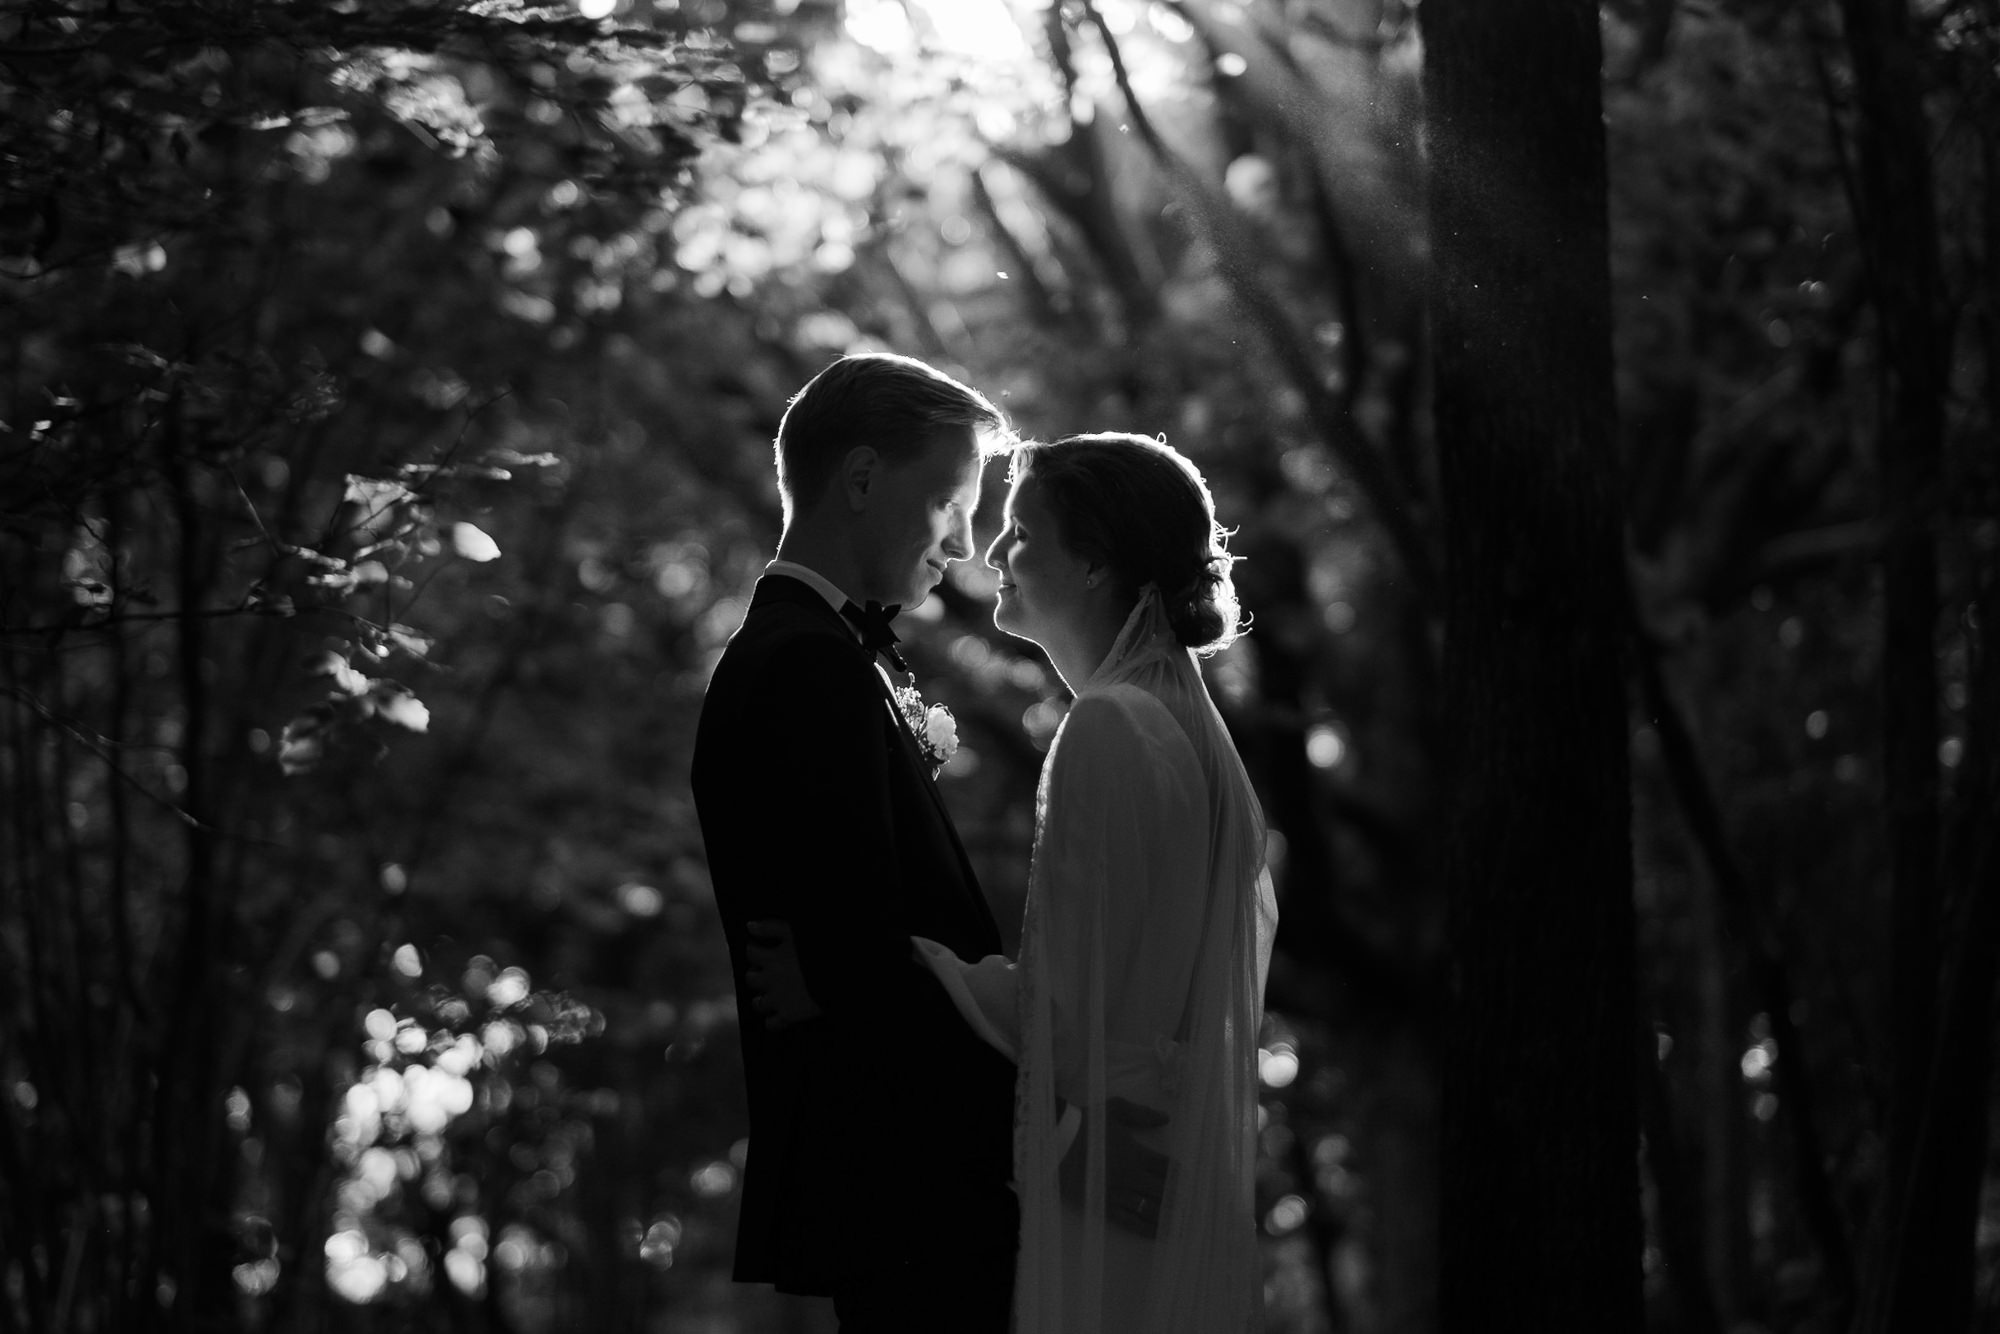 Sublime couple portrait with natural backlight in trees photo by Nordica Photography